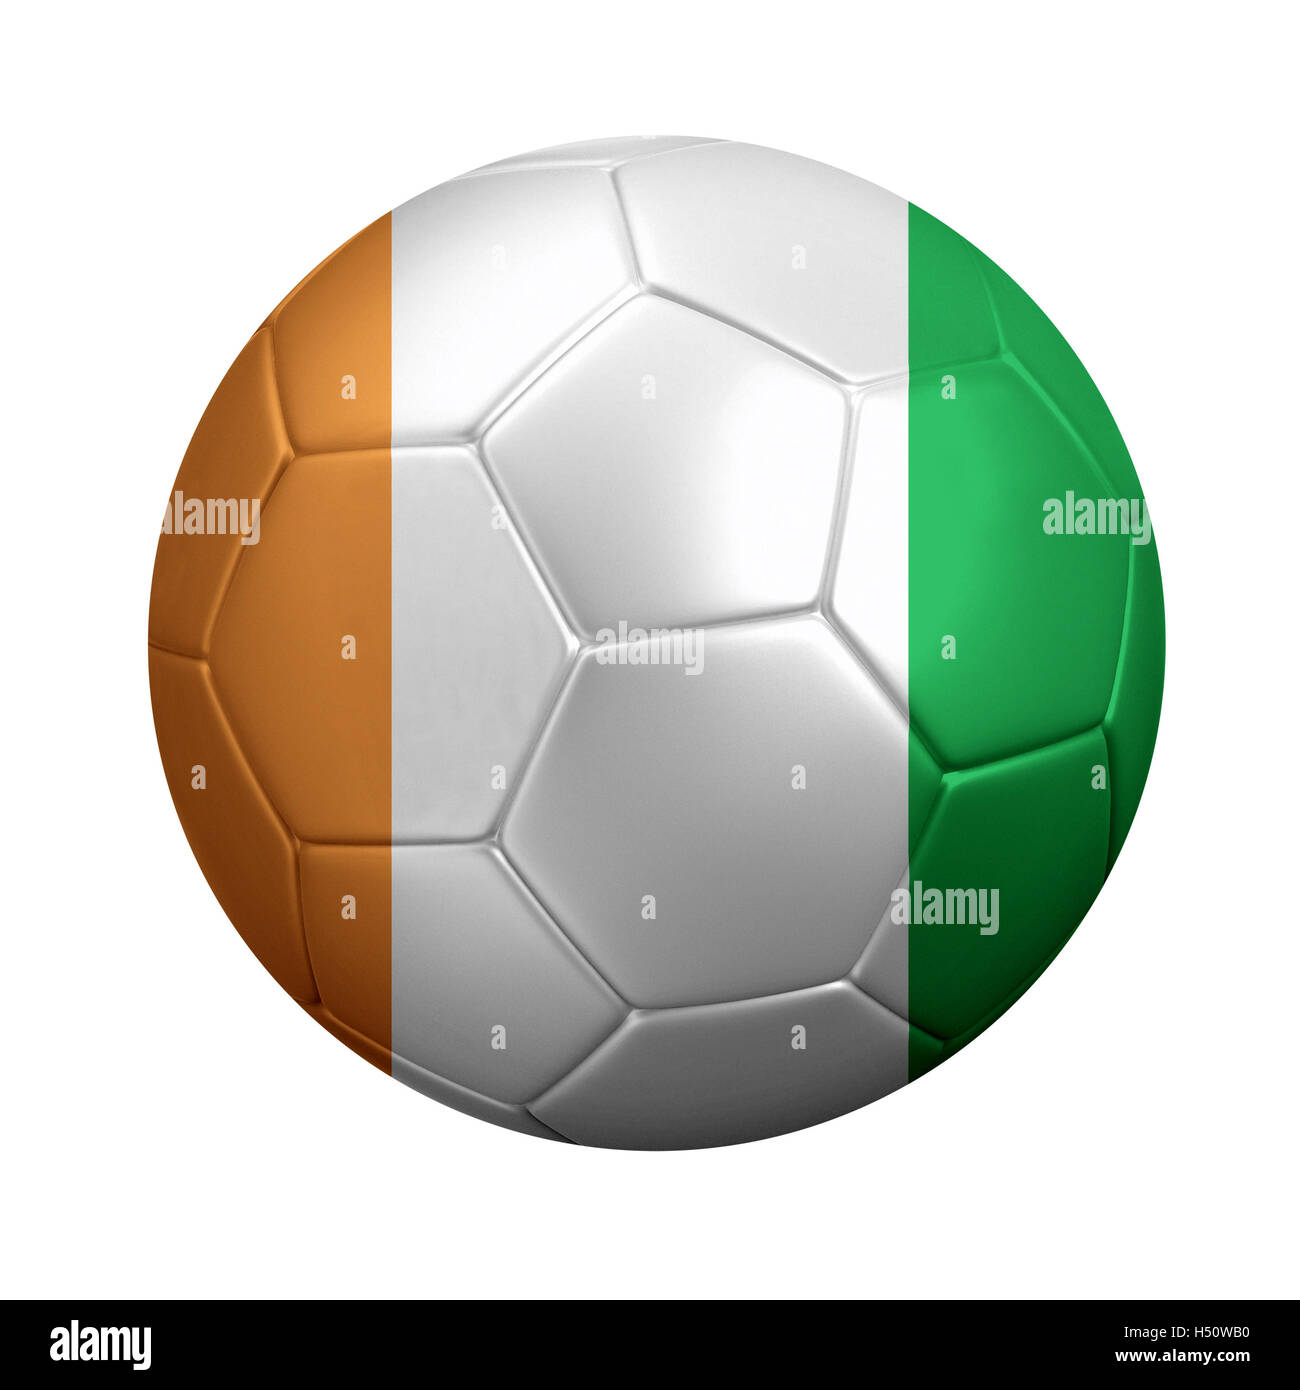 3D rendering of soccer ball wrapped in Ivory Coast's national flag. Isolated on white. - Stock Image